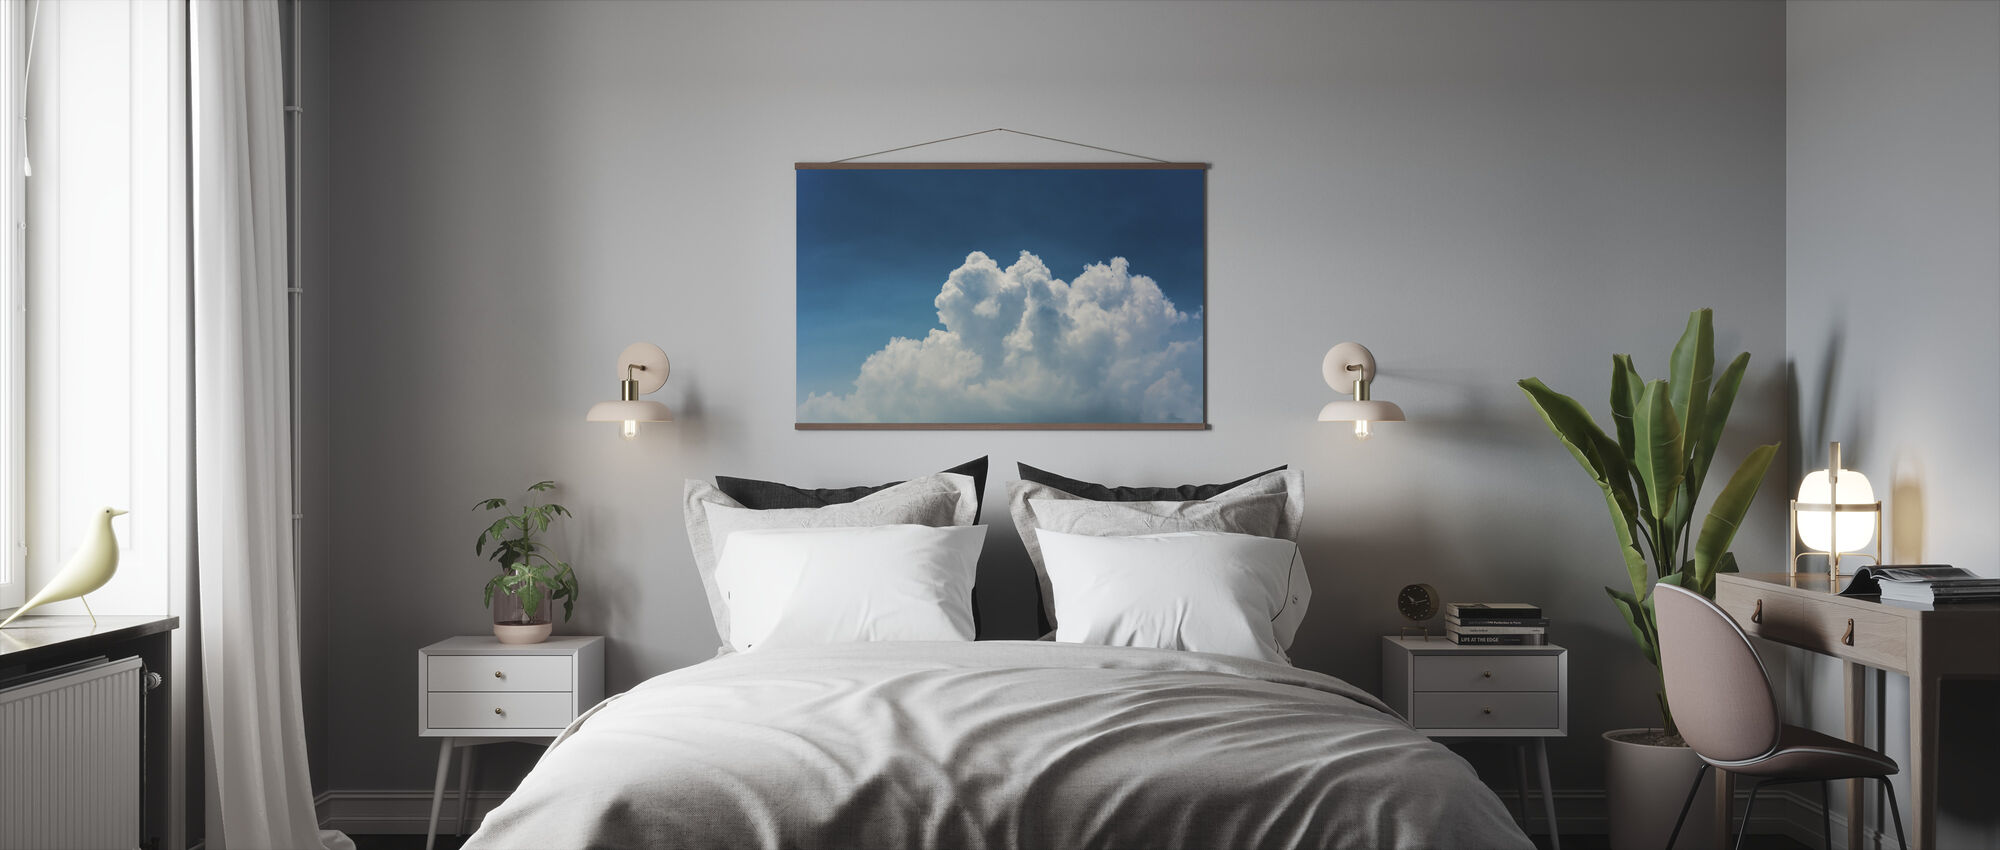 Blue Sky and Clouds - Poster - Bedroom